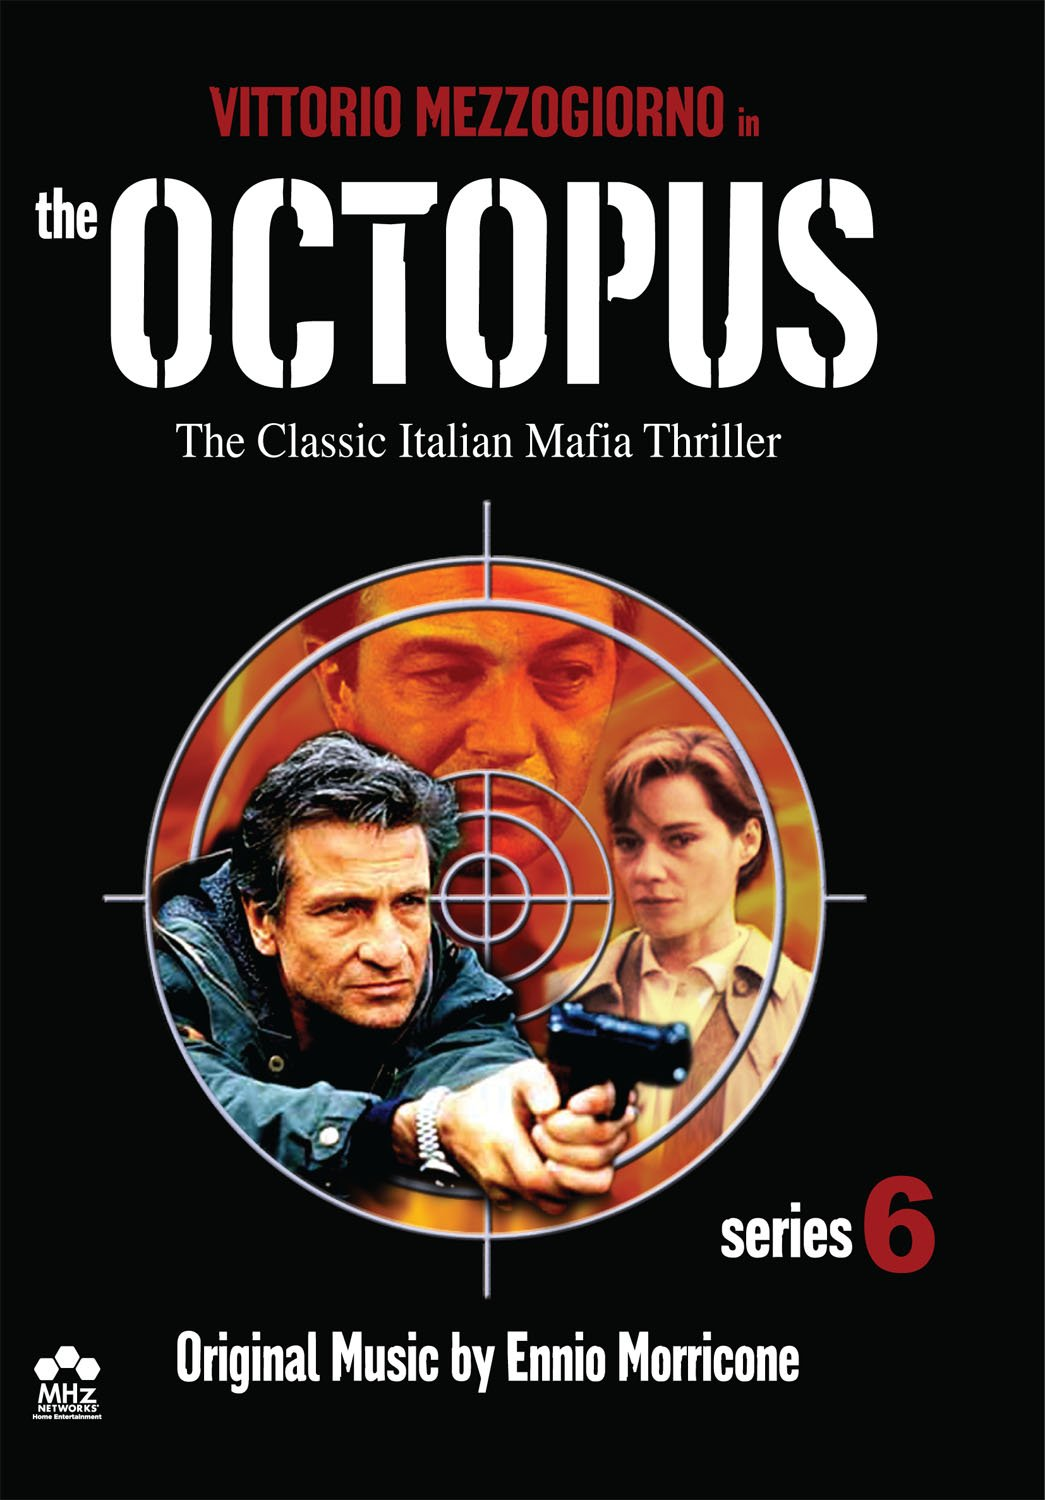 The Octopus: Series 6